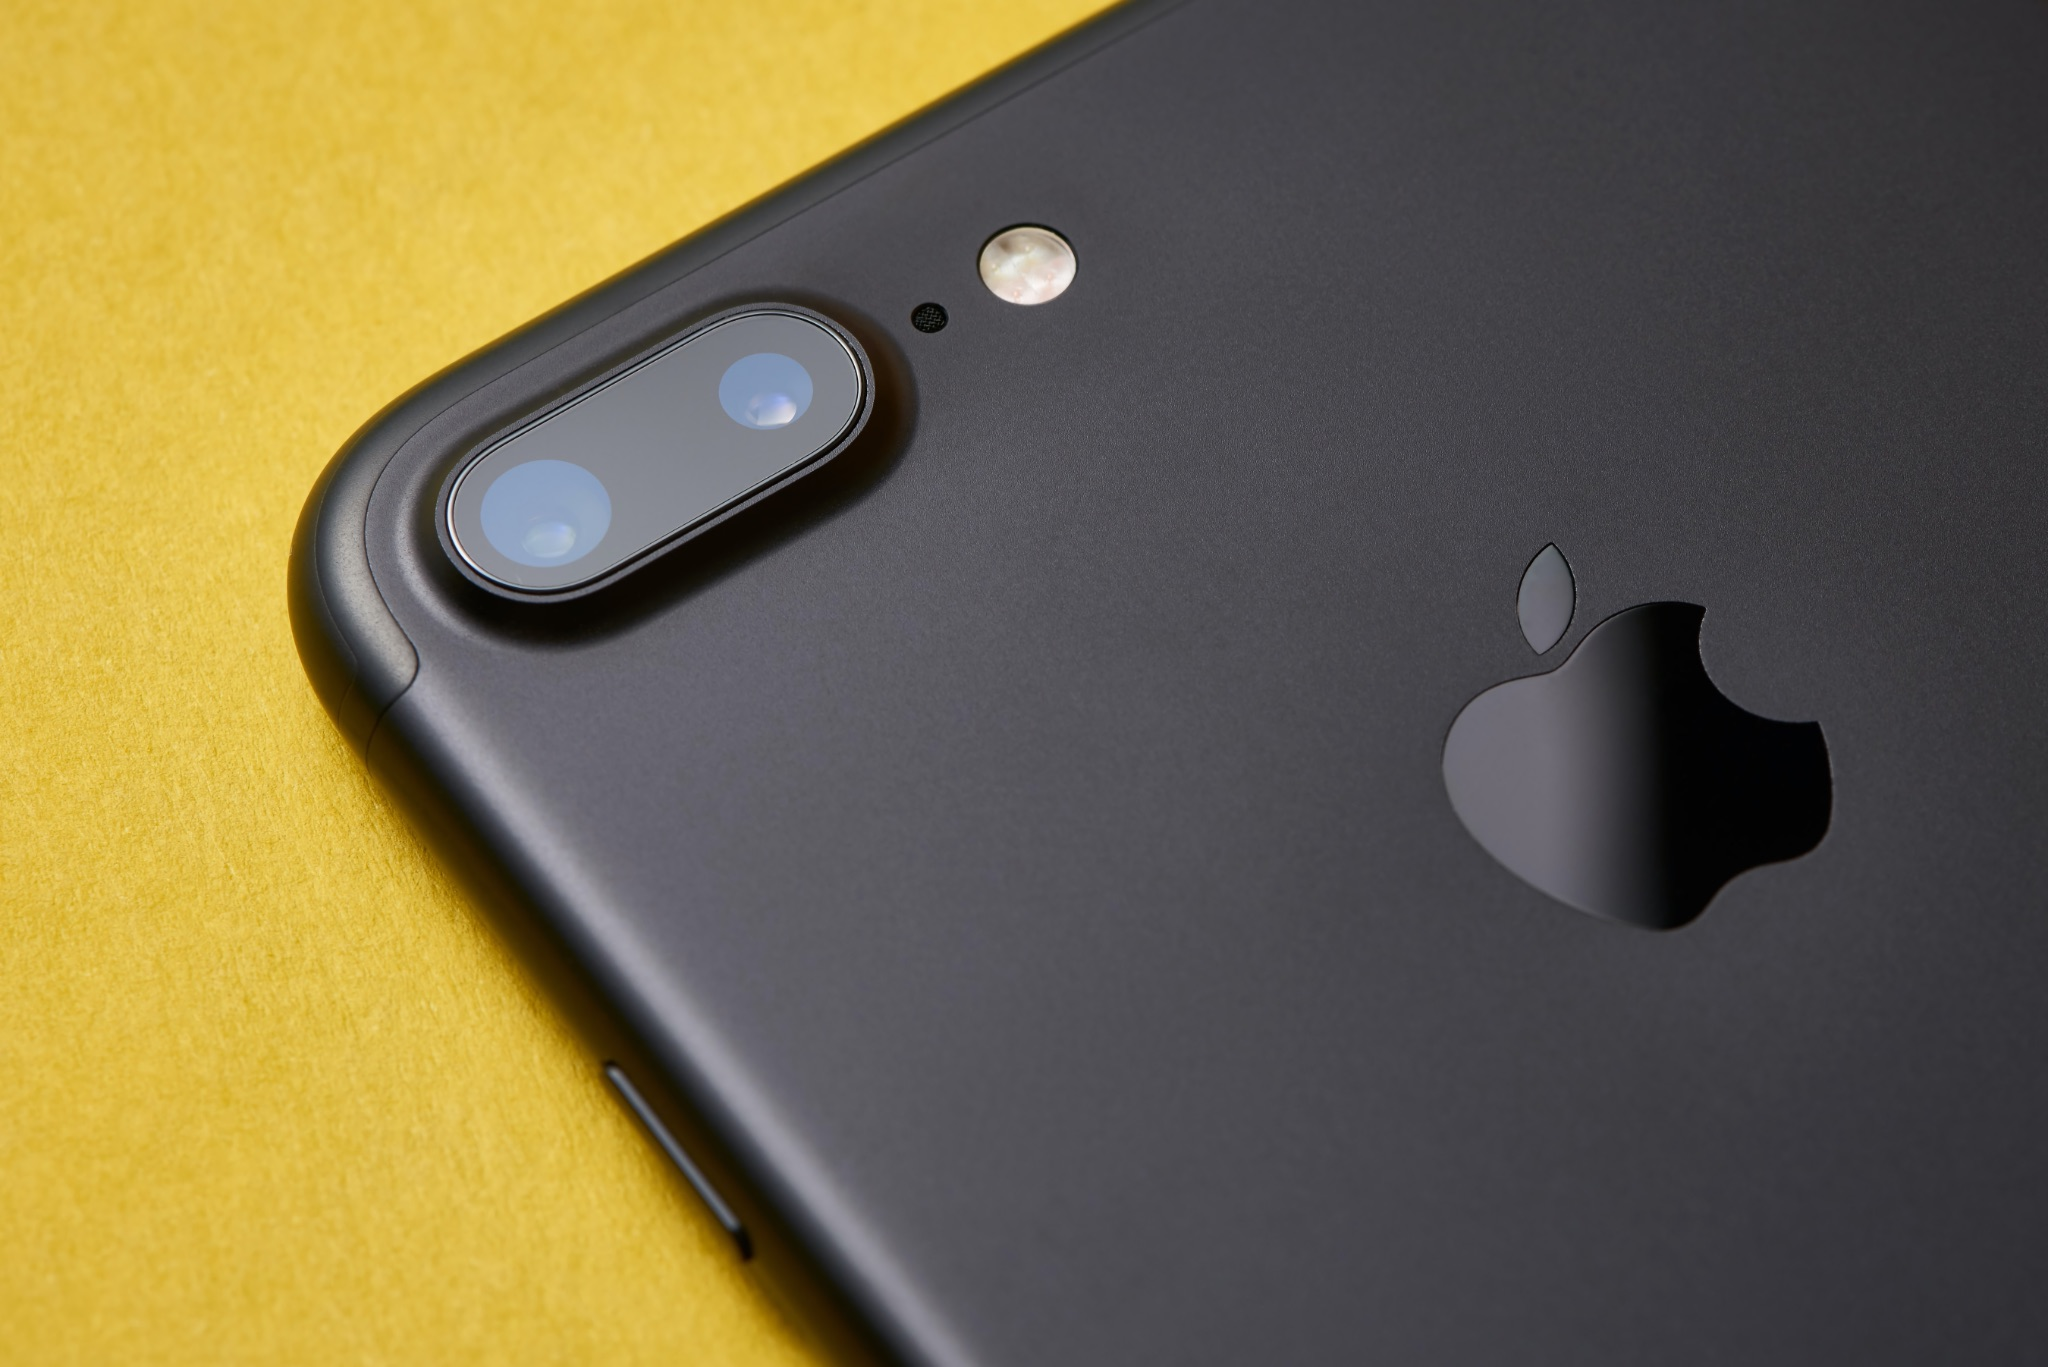 A photograph accompanying the iPhone flashlight brightness tutorial featuring a closeup of a matte black iPhone 7 Plus showing the rear dual-lens camera and LED flash detail